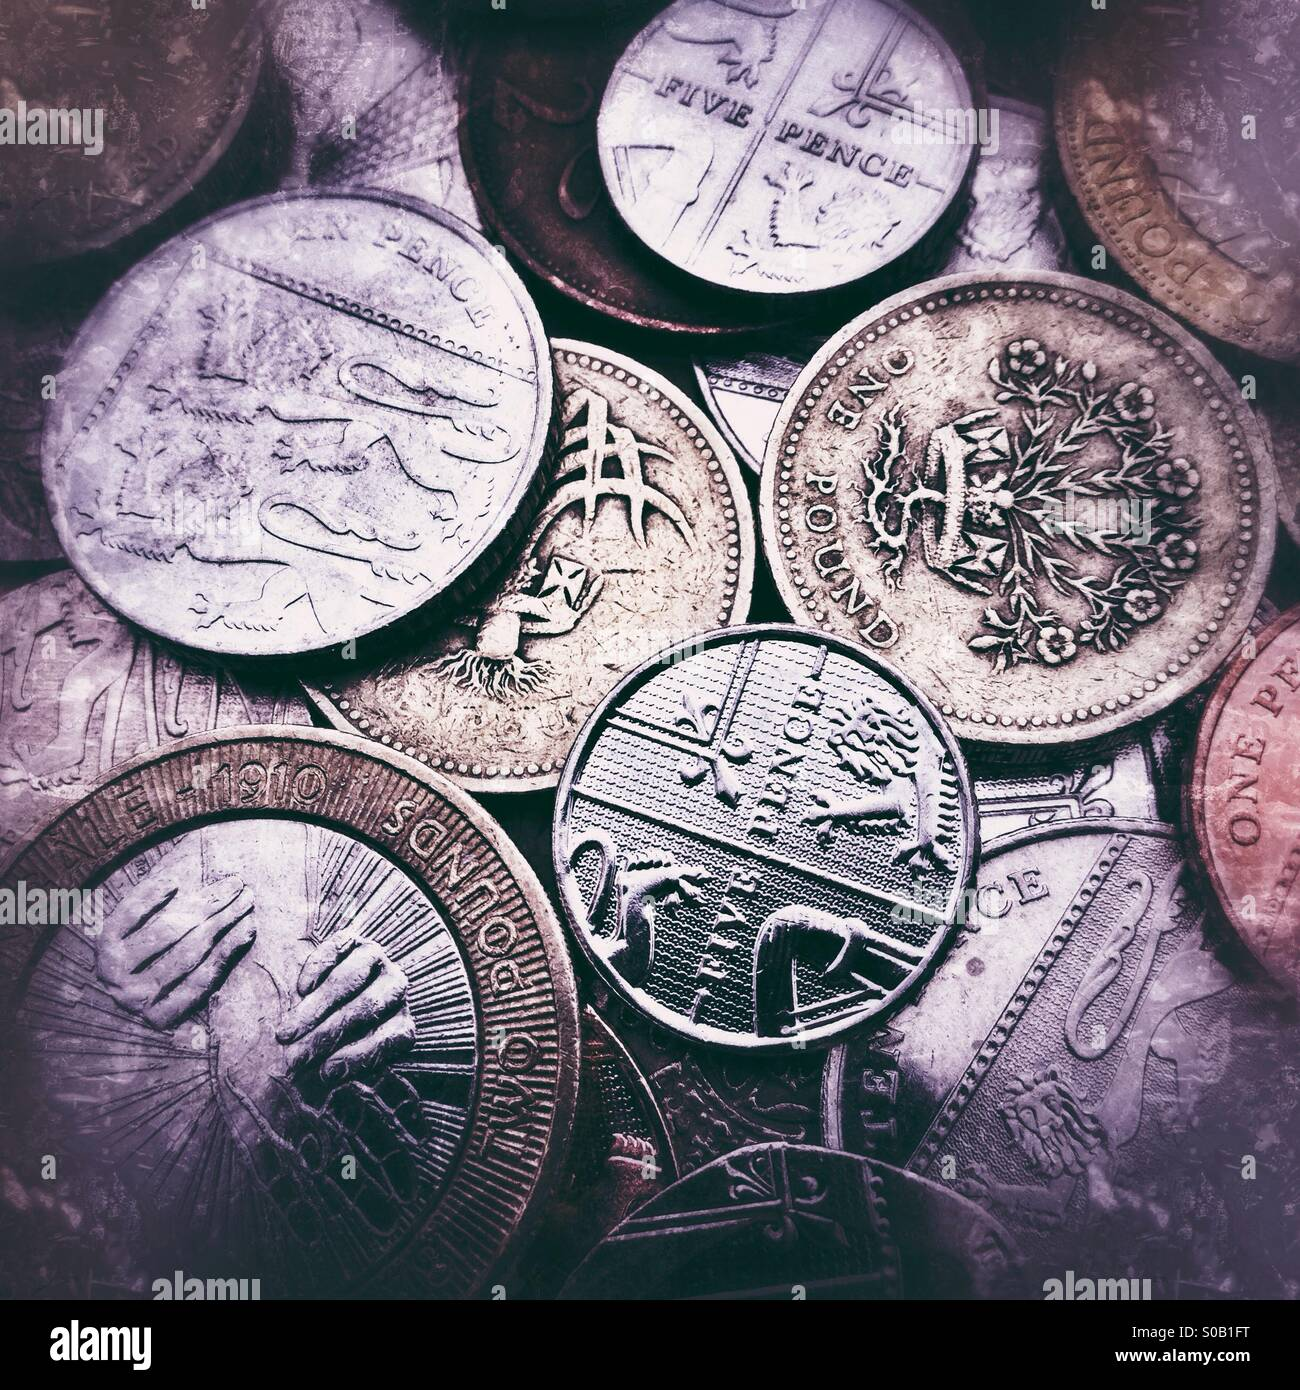 A background of British coins with grunge filters applied - Stock Image